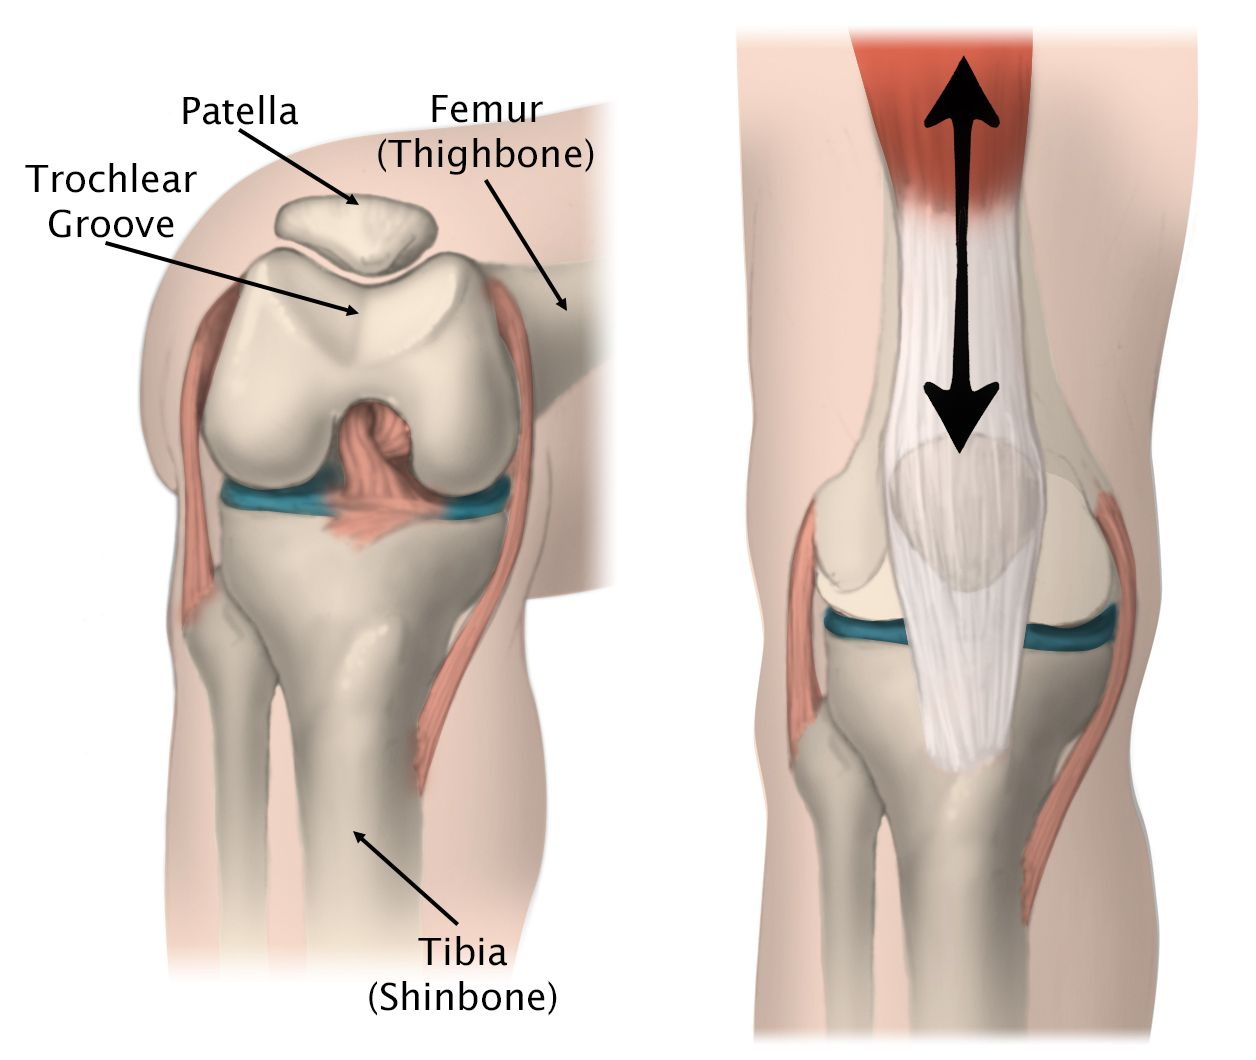 Illustration of the movement of the patella in the trochlear groove